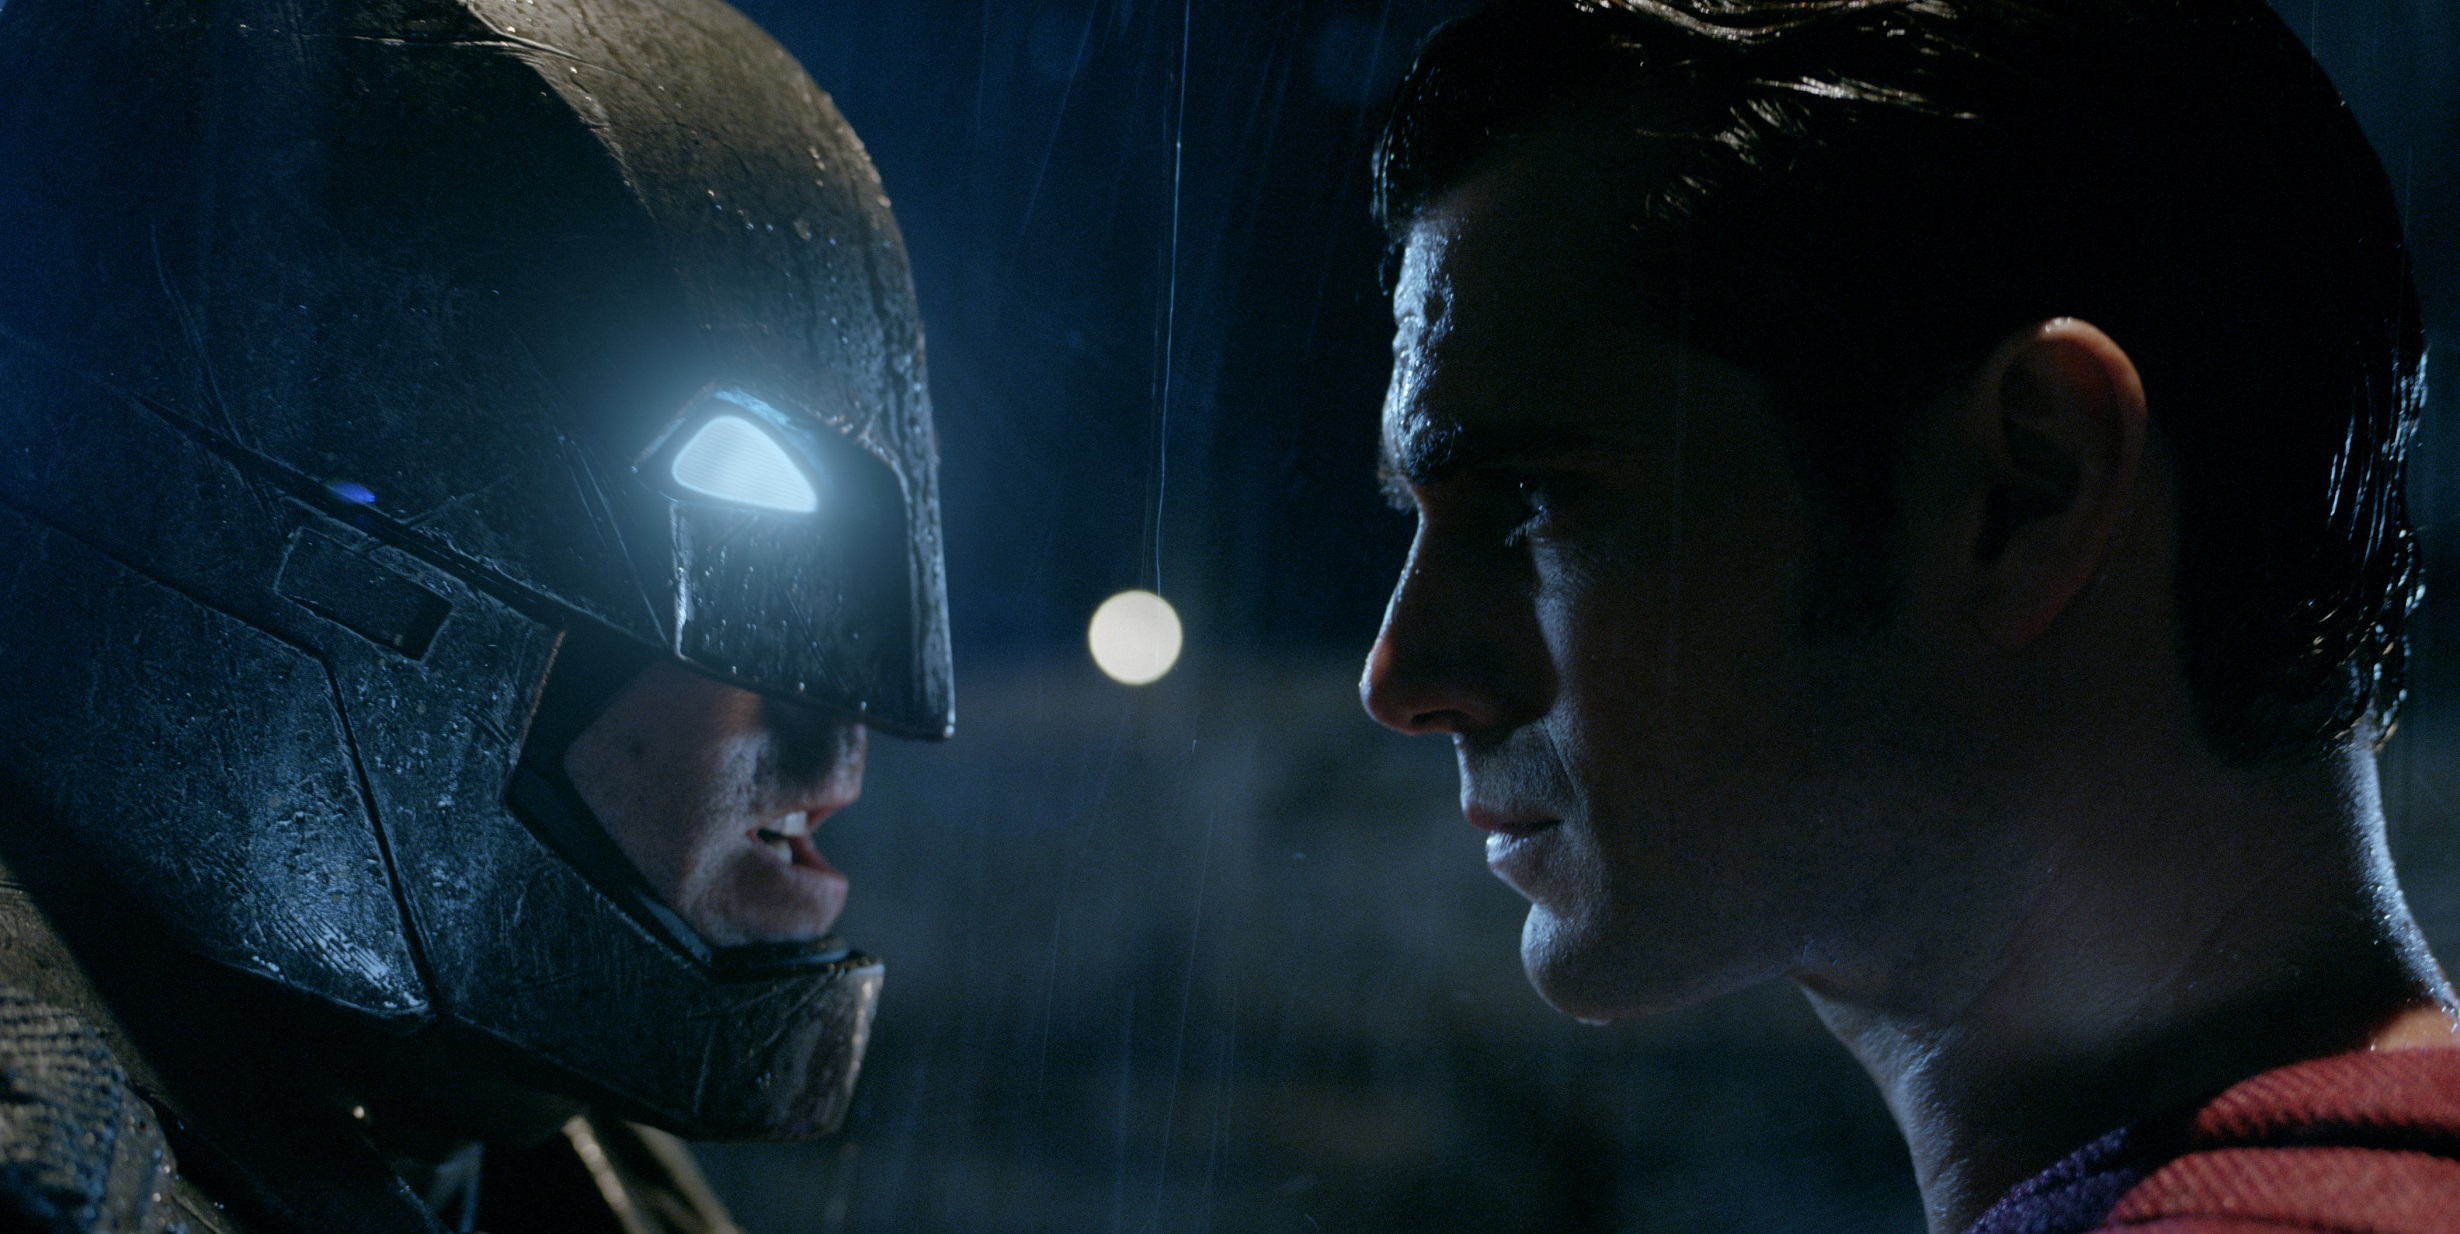 'Batman vs. Superman' movie review by Lucas Mirabella - LATF USA